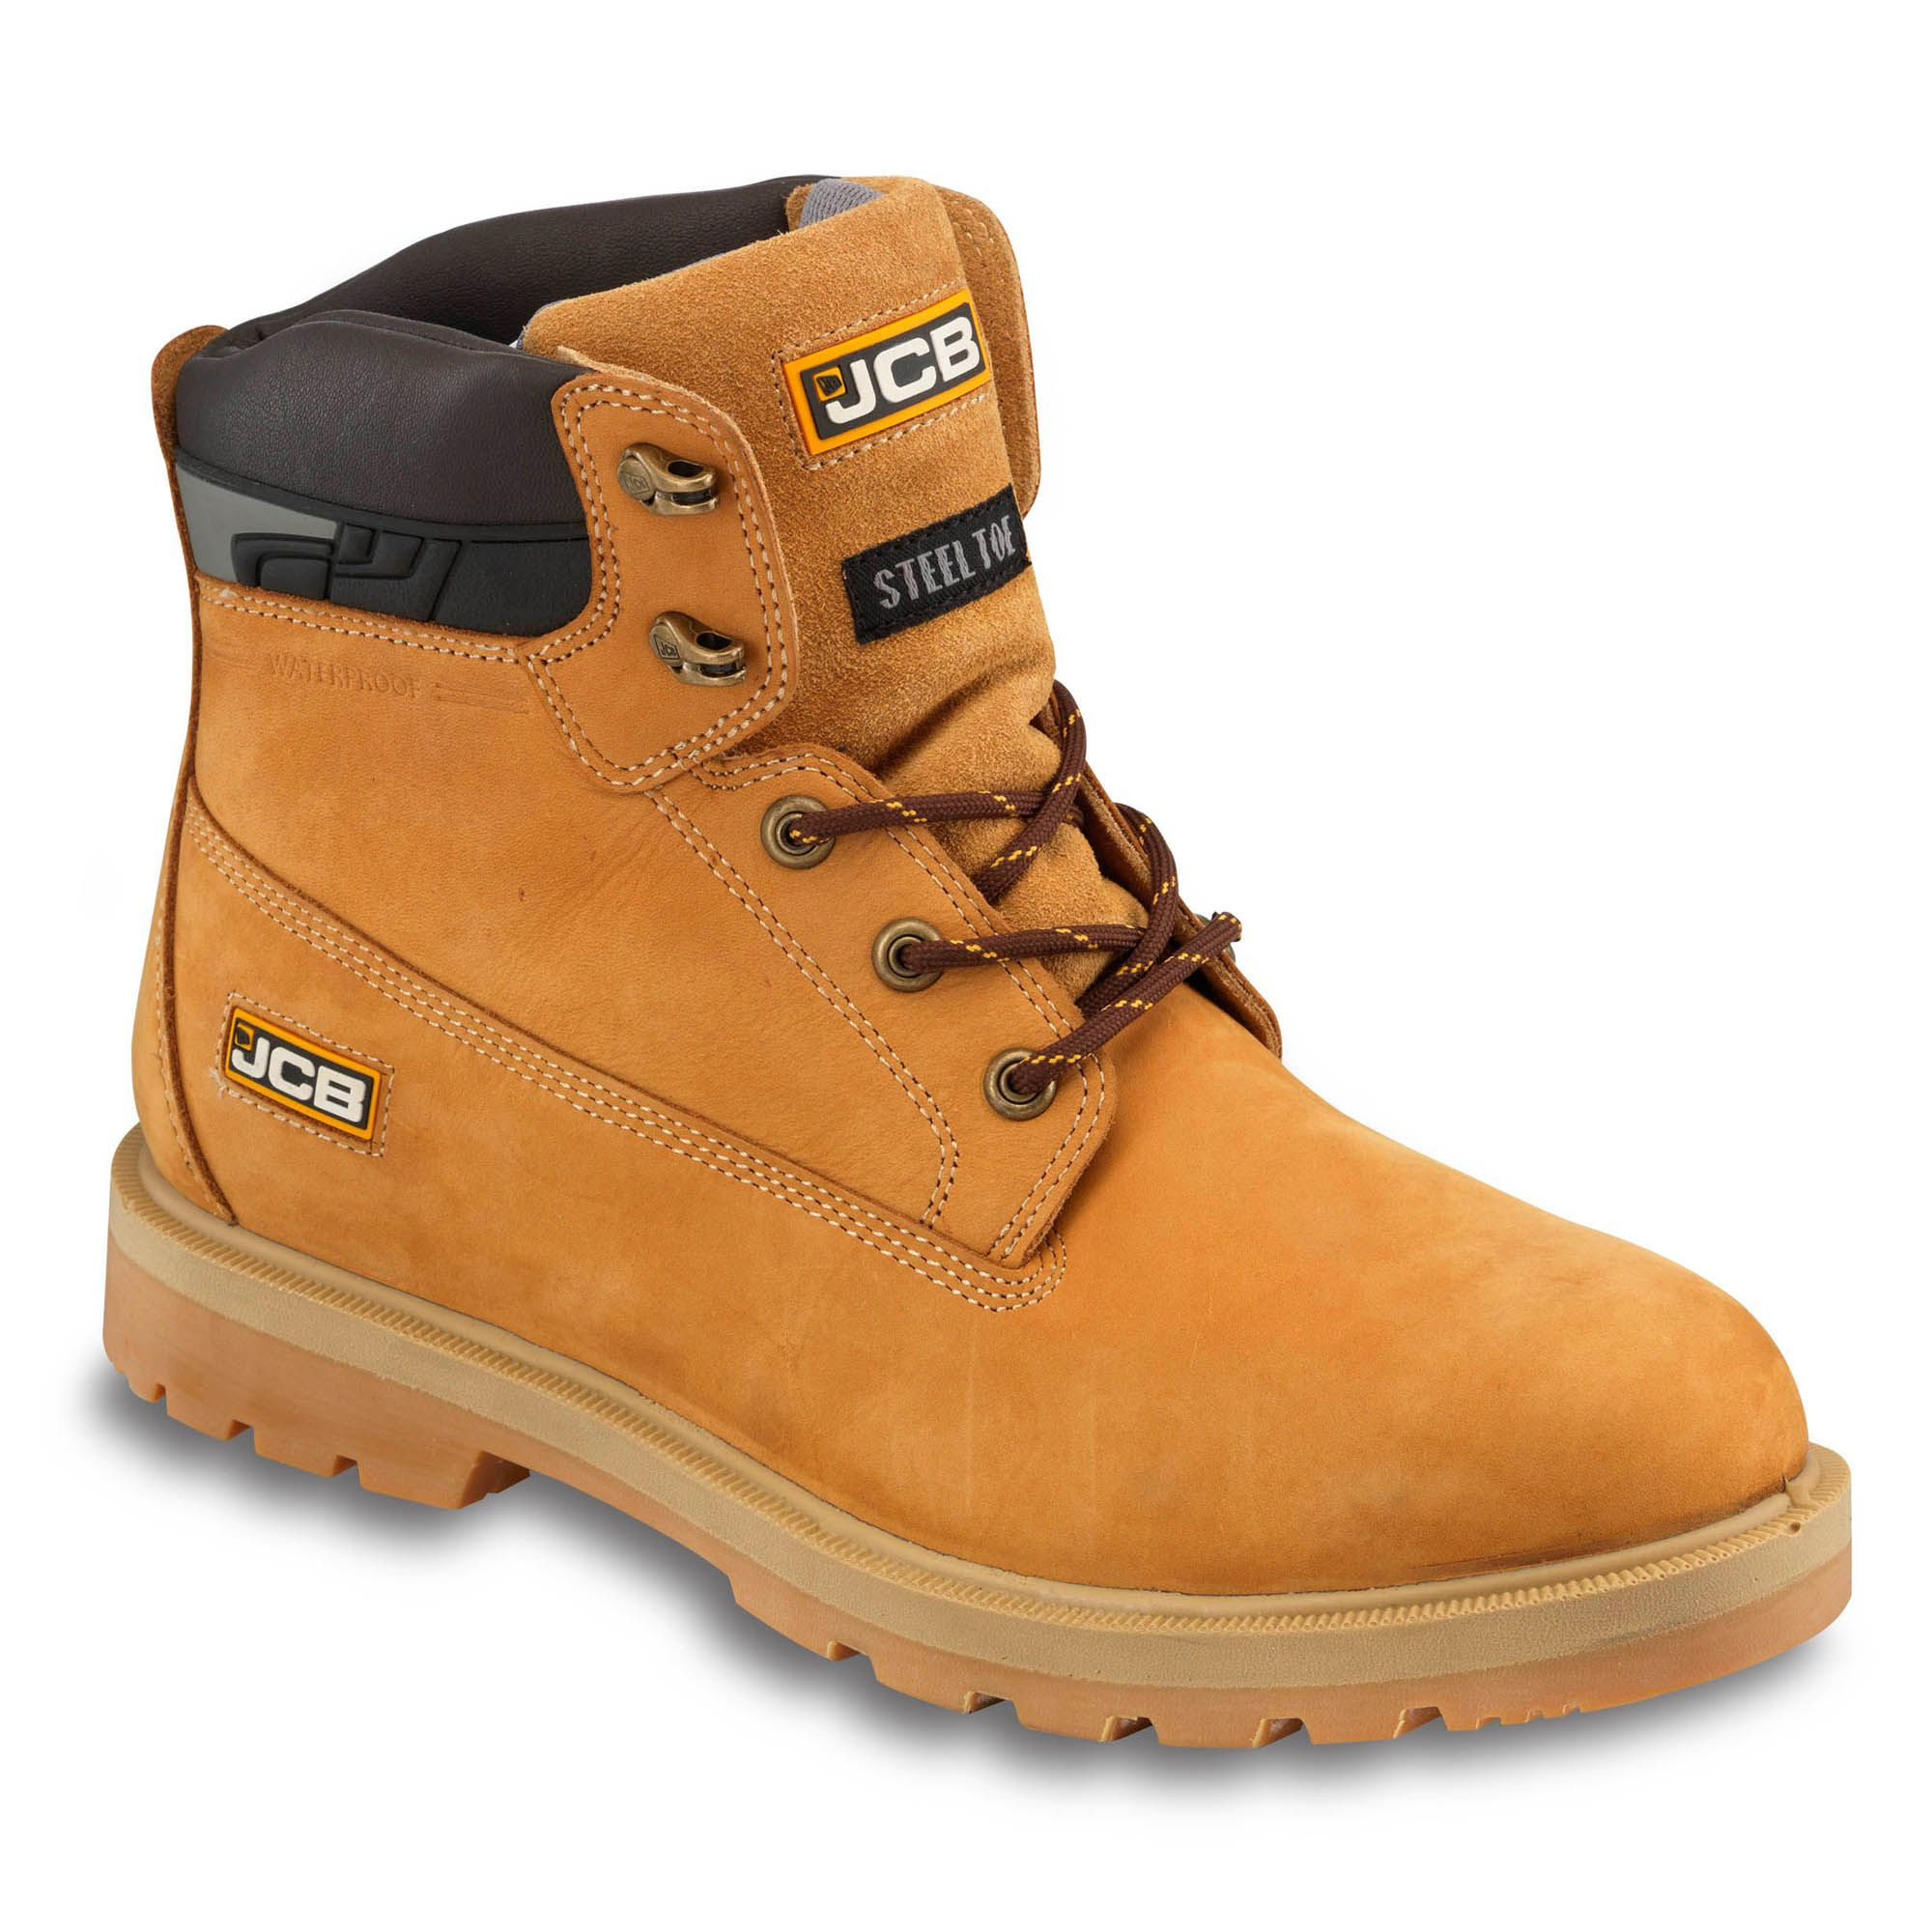 a6e67831afe JCB Honey Protector Safety boots, size 10   Departments   DIY at B&Q